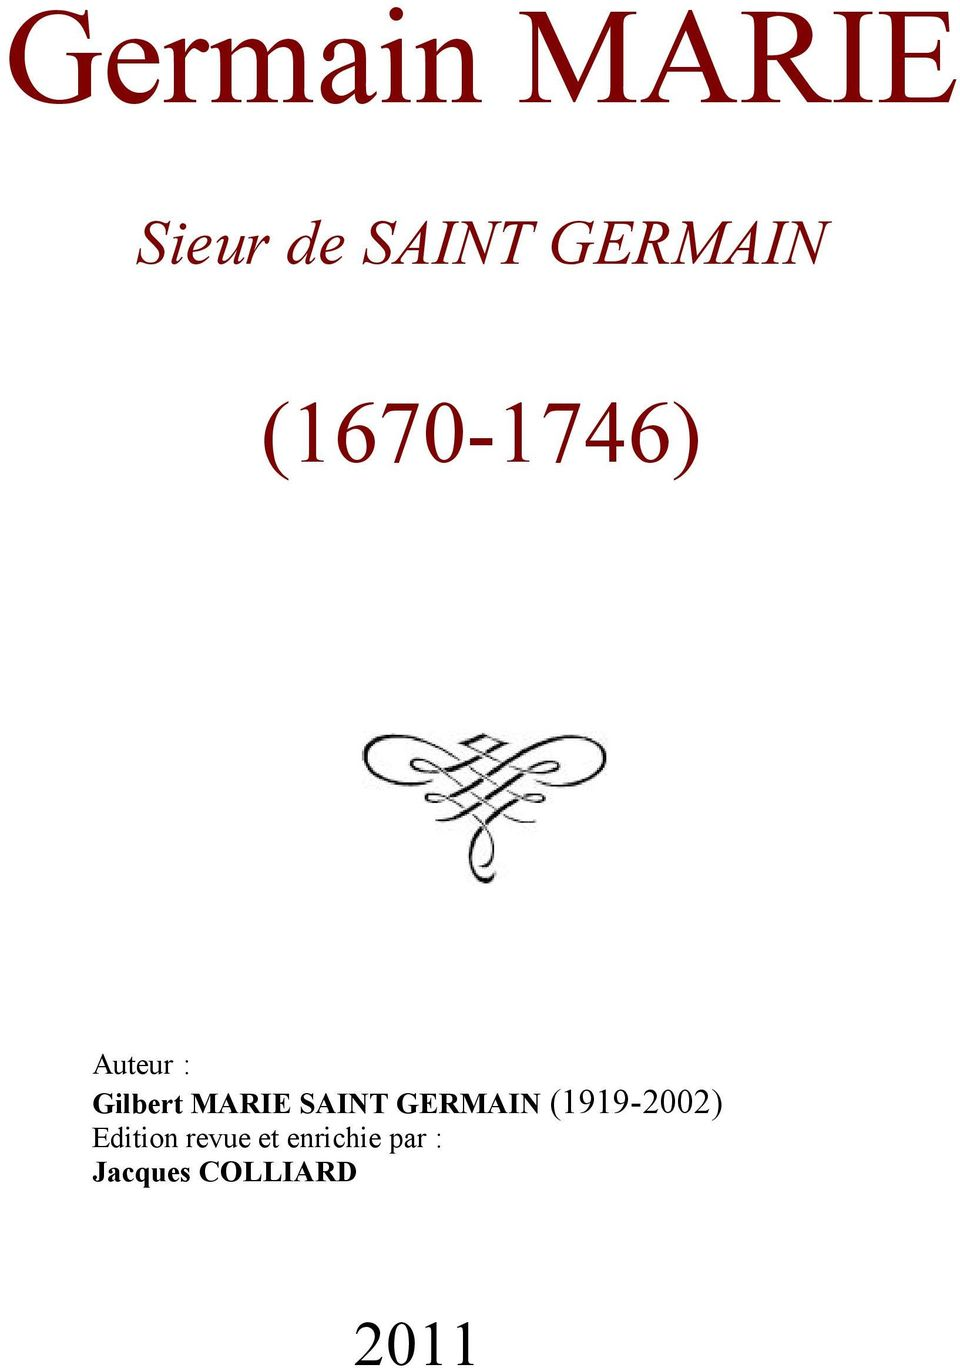 SAINT GERMAIN (1919-2002) Edition